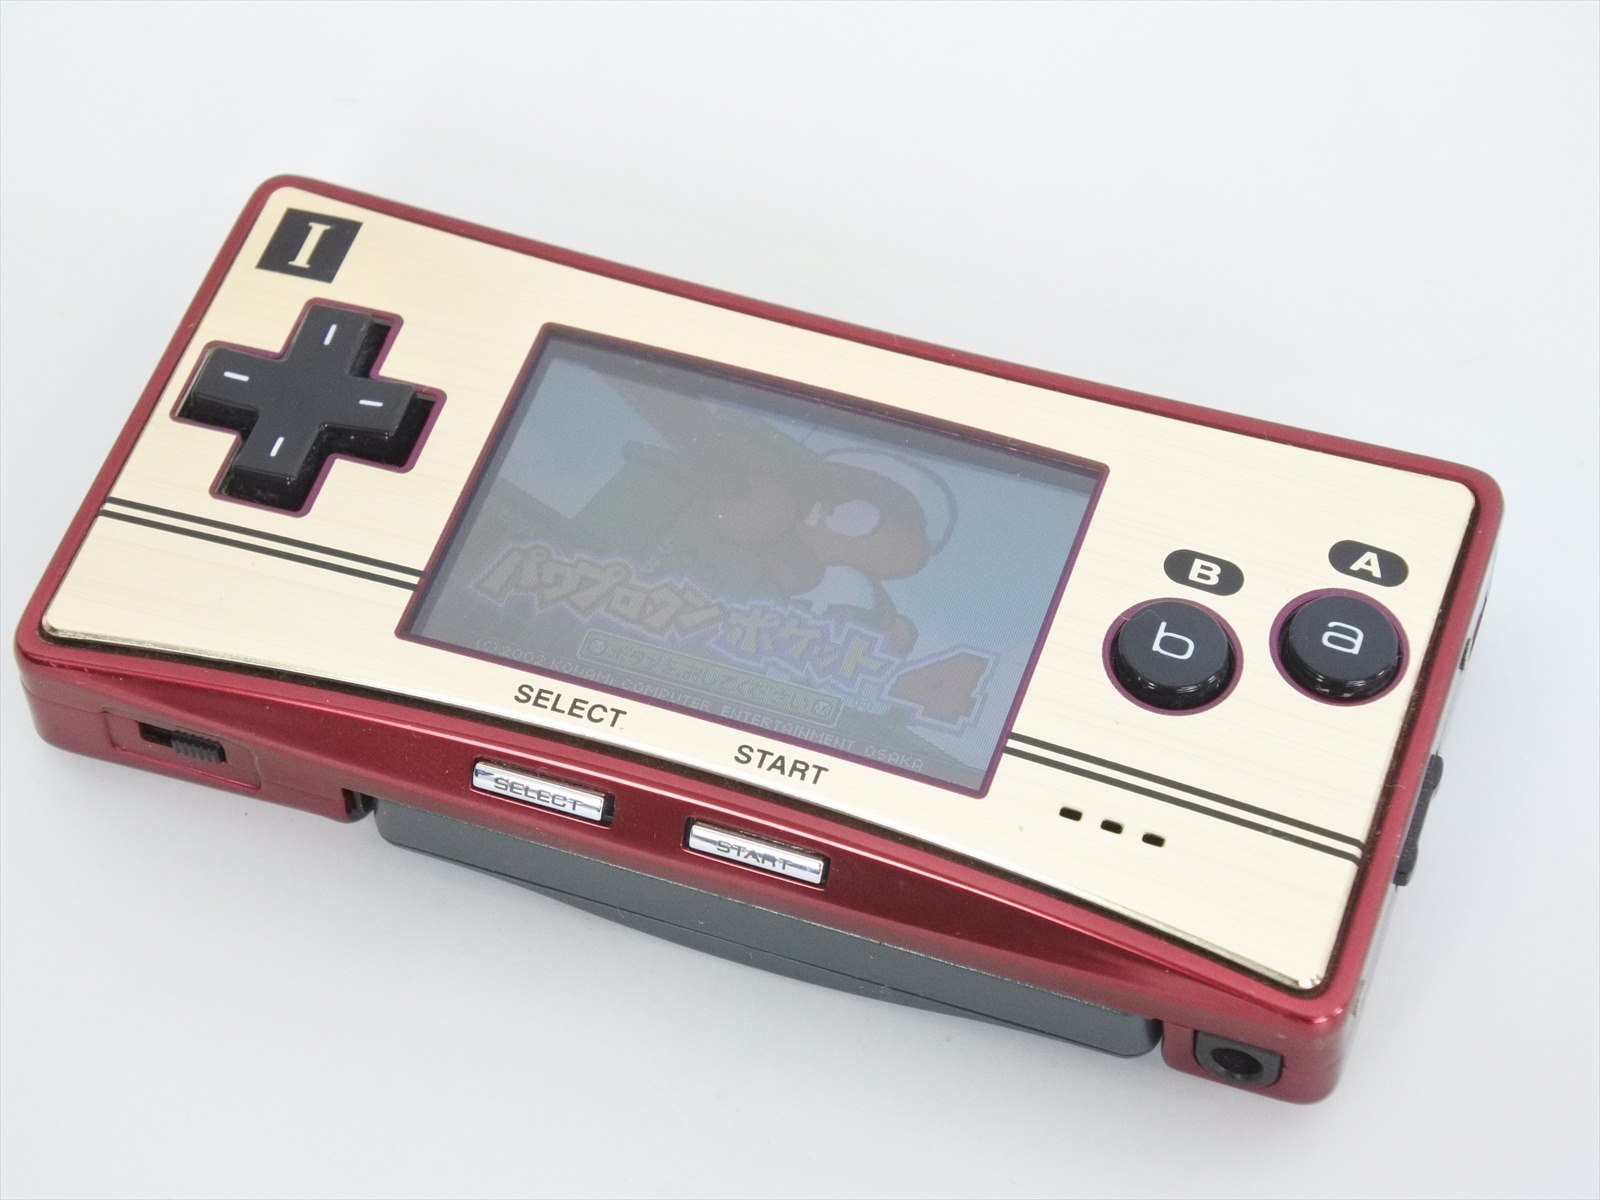 Détails sur Junk Not Working Game Boy Micro Famicom Version Happy Mario Console OXY 001 2470